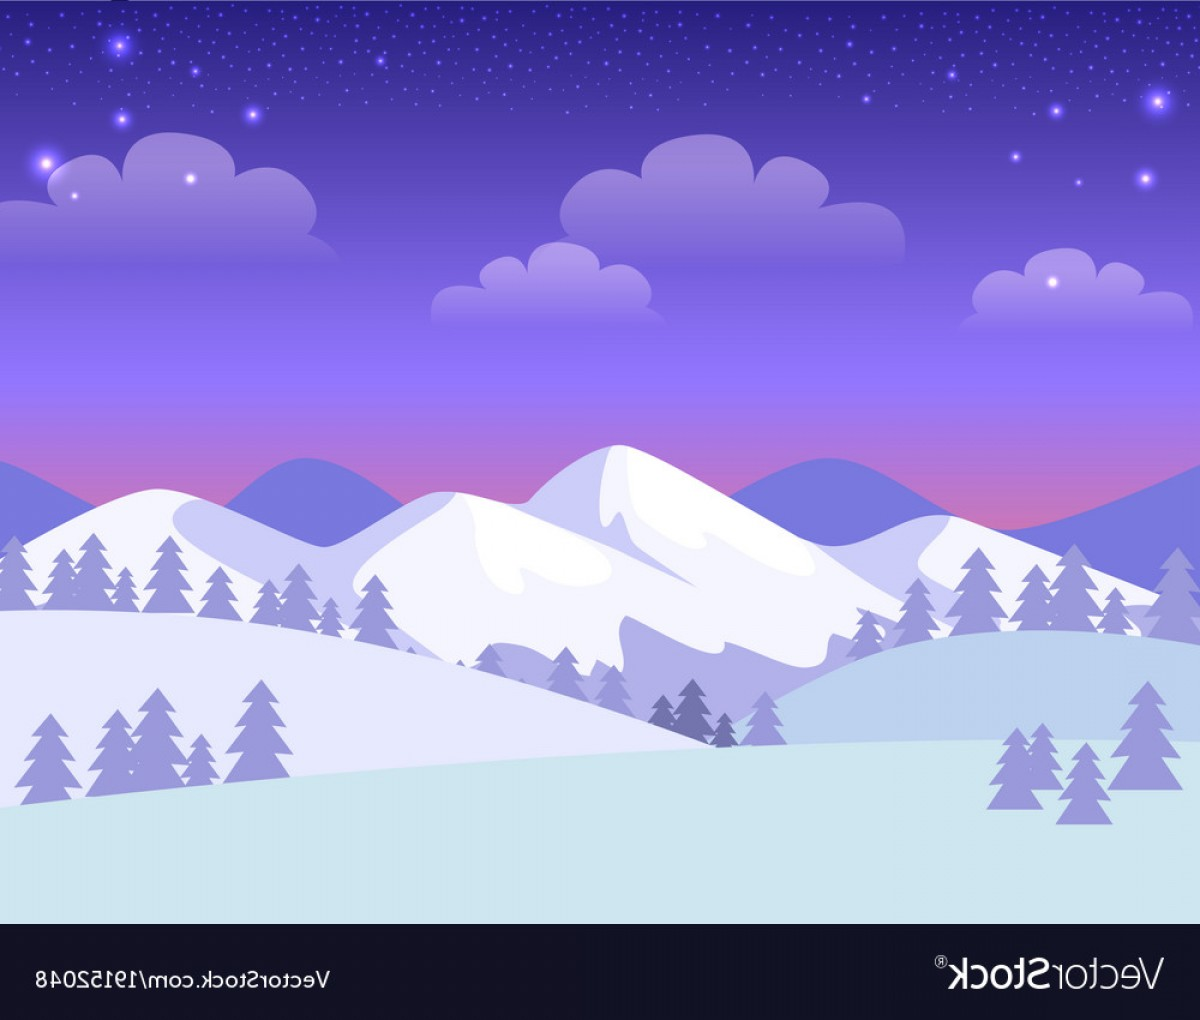 Snowy Mountain Vector Graphics: Colourful Greeting Card With Snowy Mountains Vector